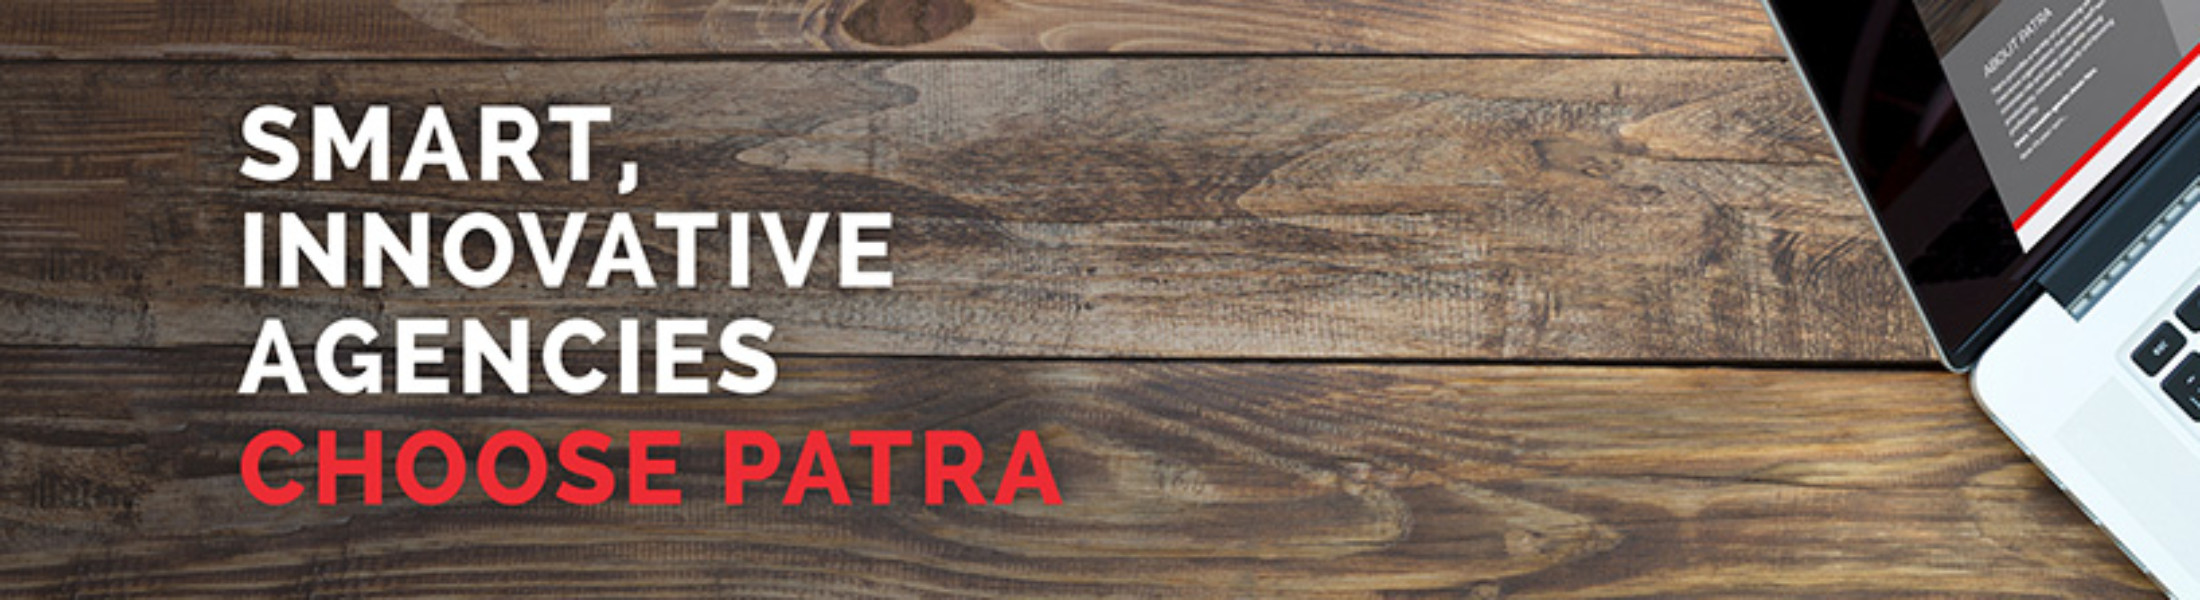 wholesale hardwood flooring nashville of patra corp throughout slider img 1 2200x600 c